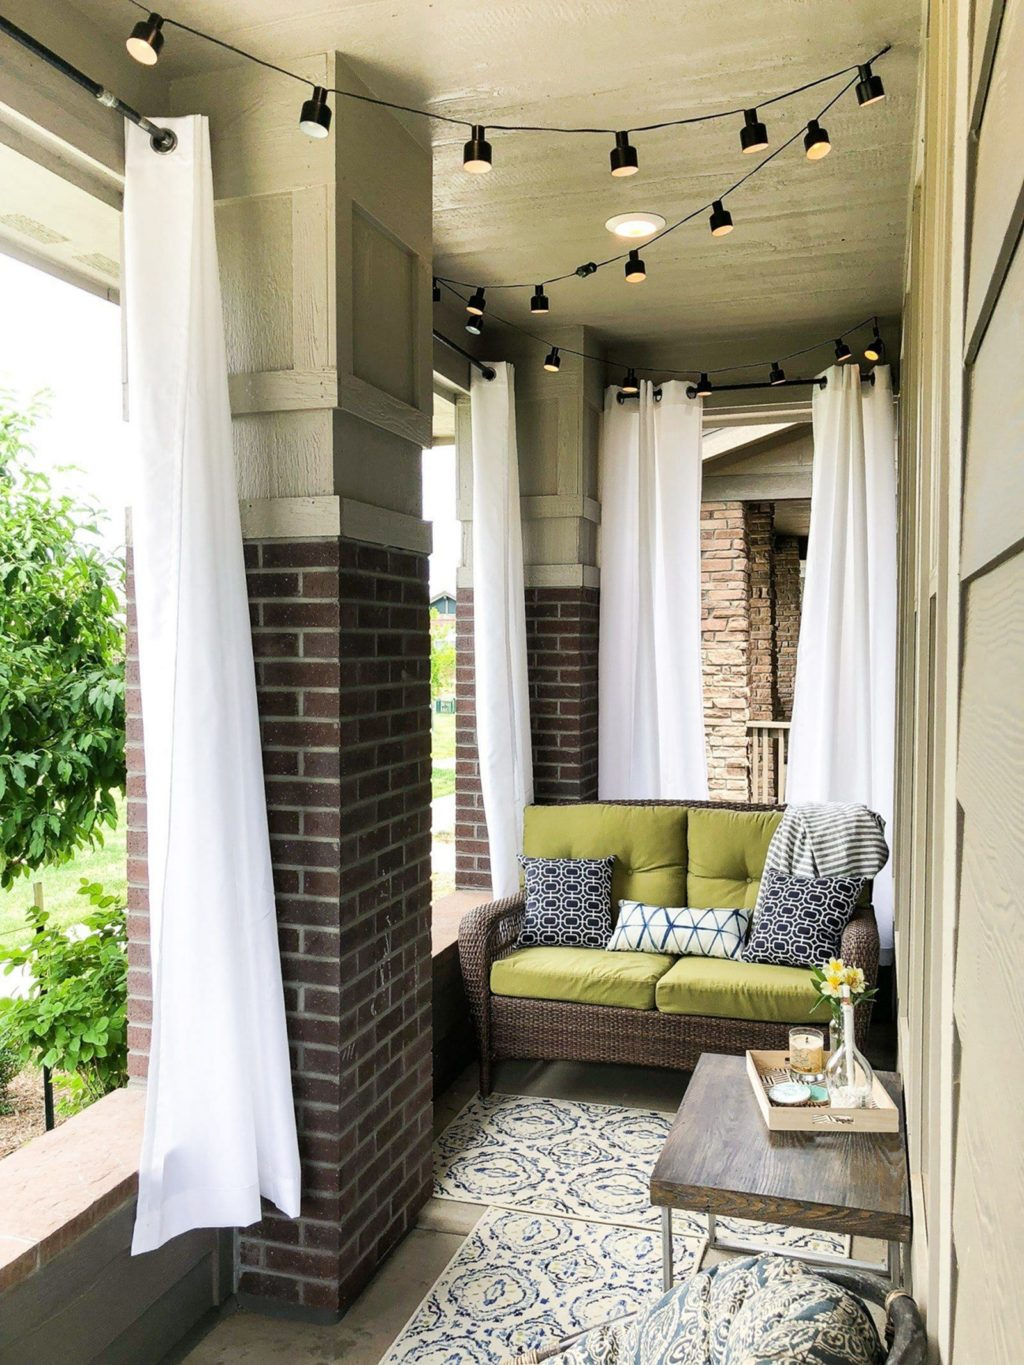 15 Porch Design Ideas That Will Have You Outside All Summer Long ☀️ porch design ideas 15 Porch Design Ideas That Will Have You Outside All Summer Long ☀️ 10 2